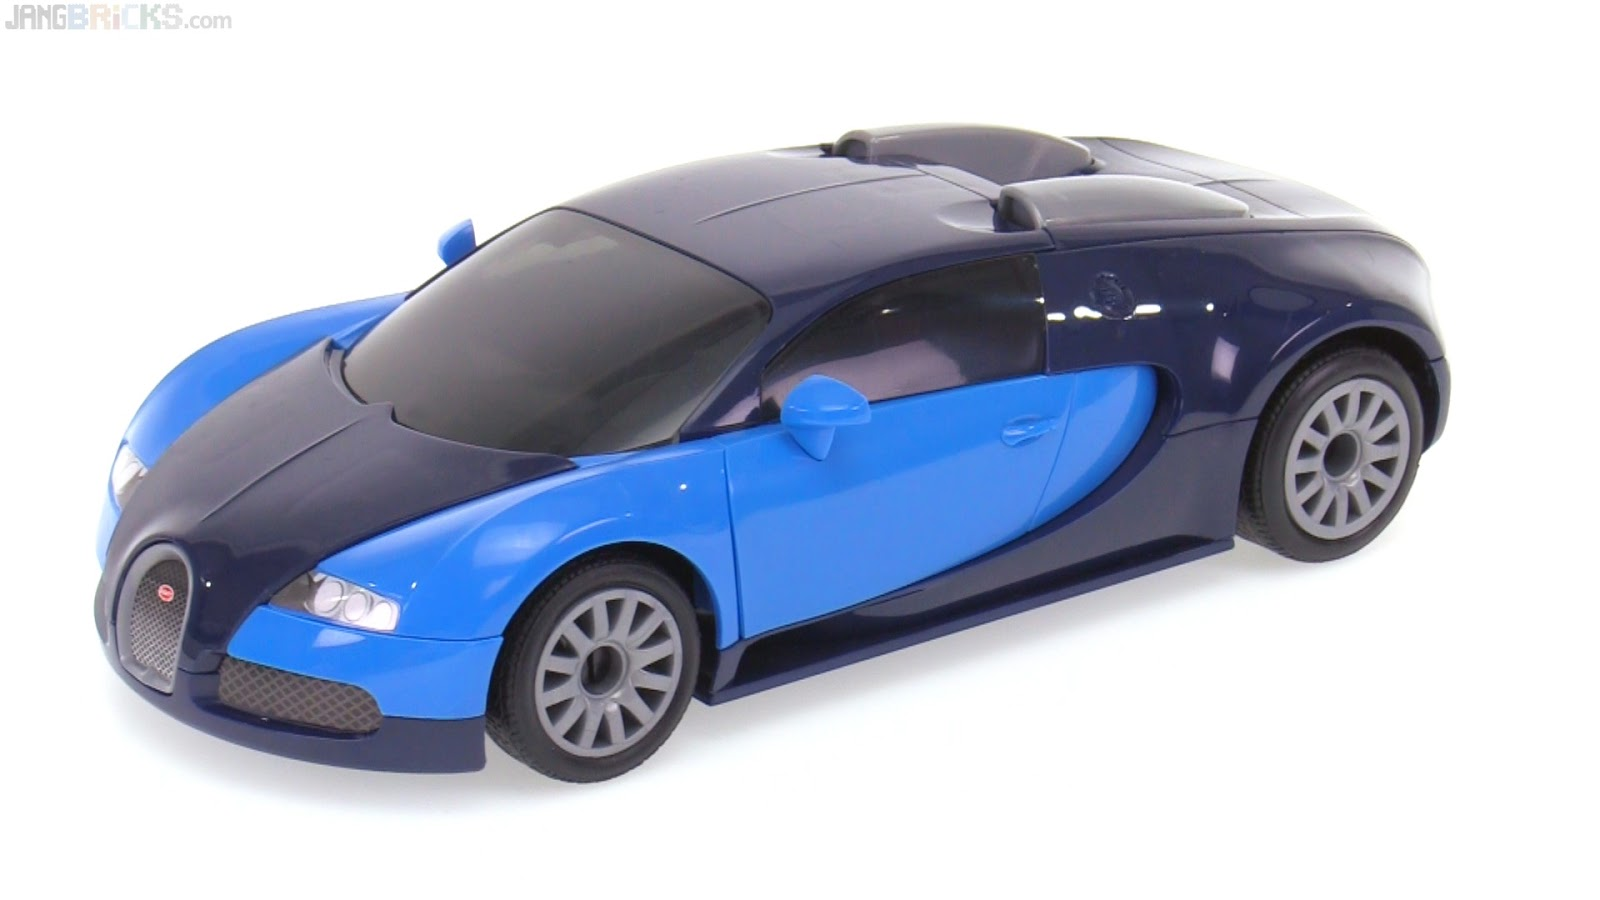 airfix quick build bugatti veyron review. Black Bedroom Furniture Sets. Home Design Ideas